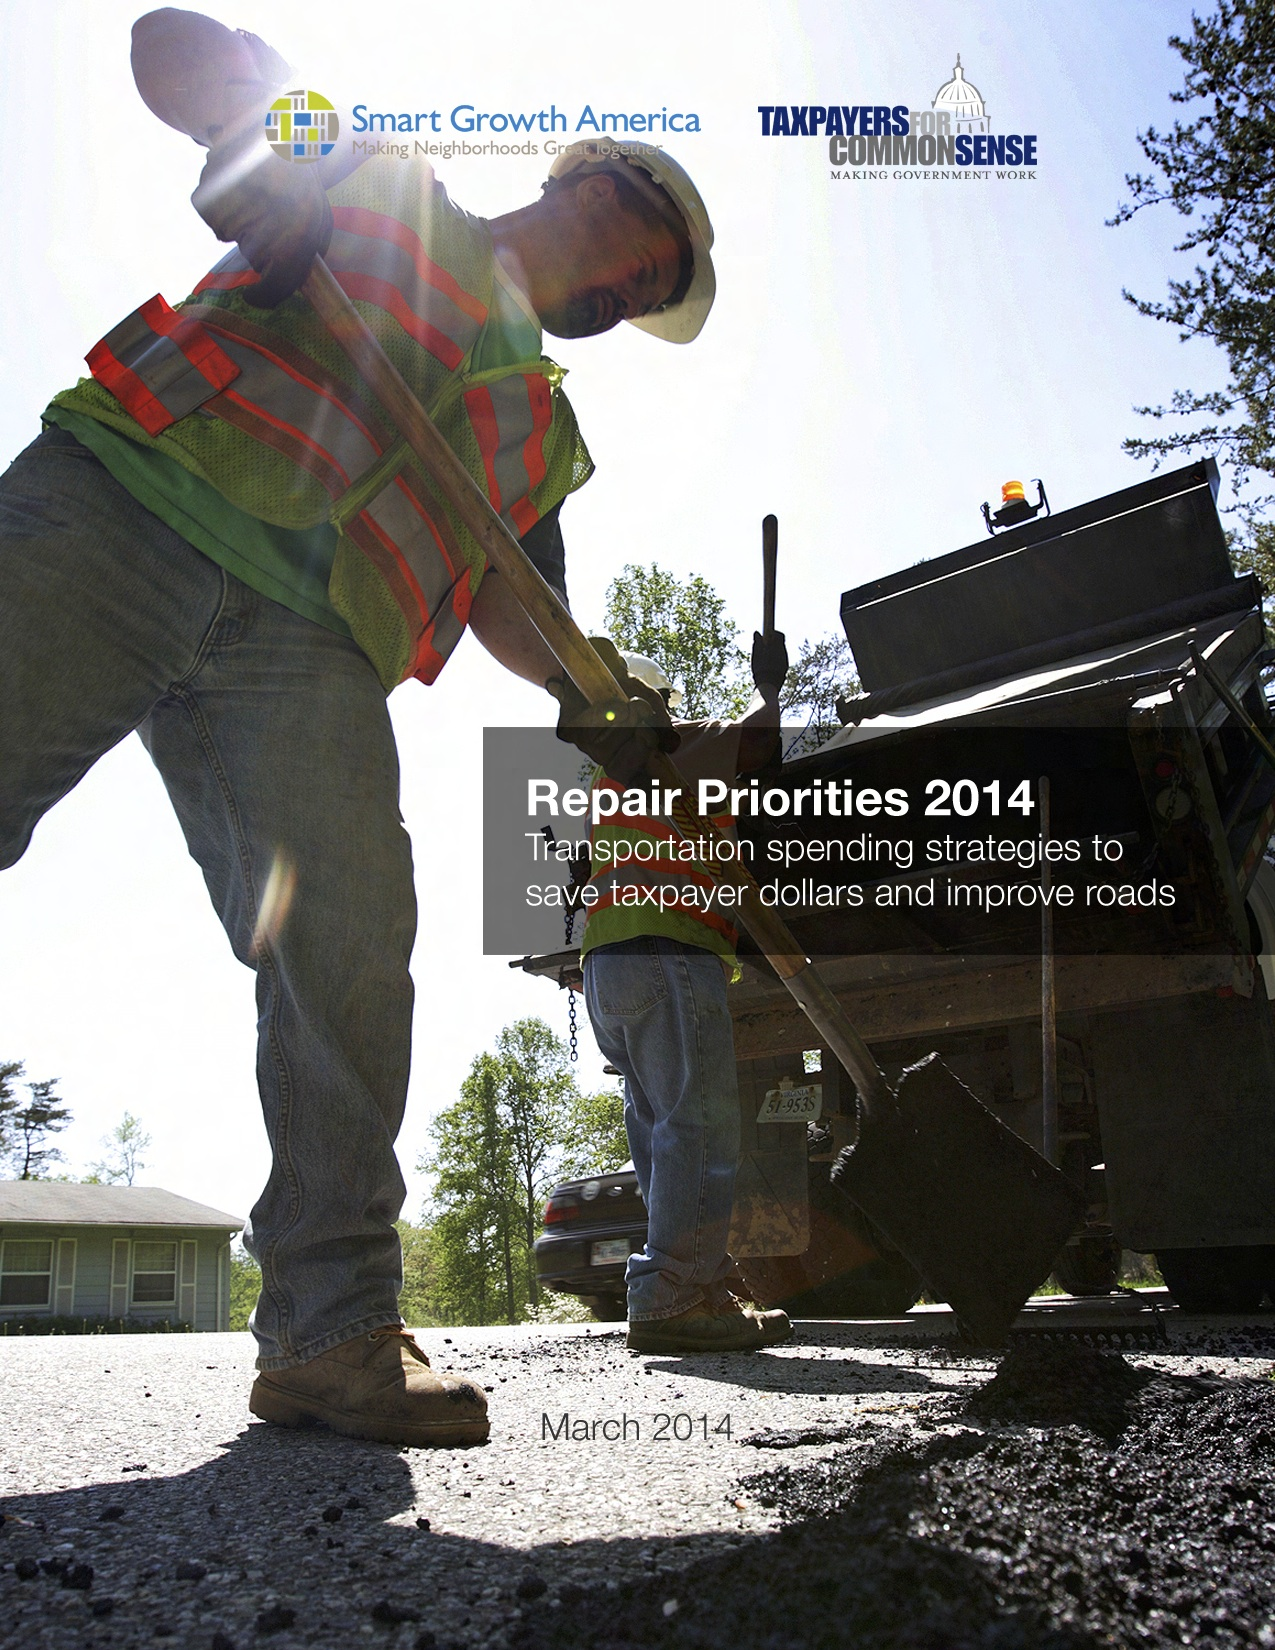 Repair Priorities 2014: Transportation strategies to improve road conditions and state fiscal outlooks